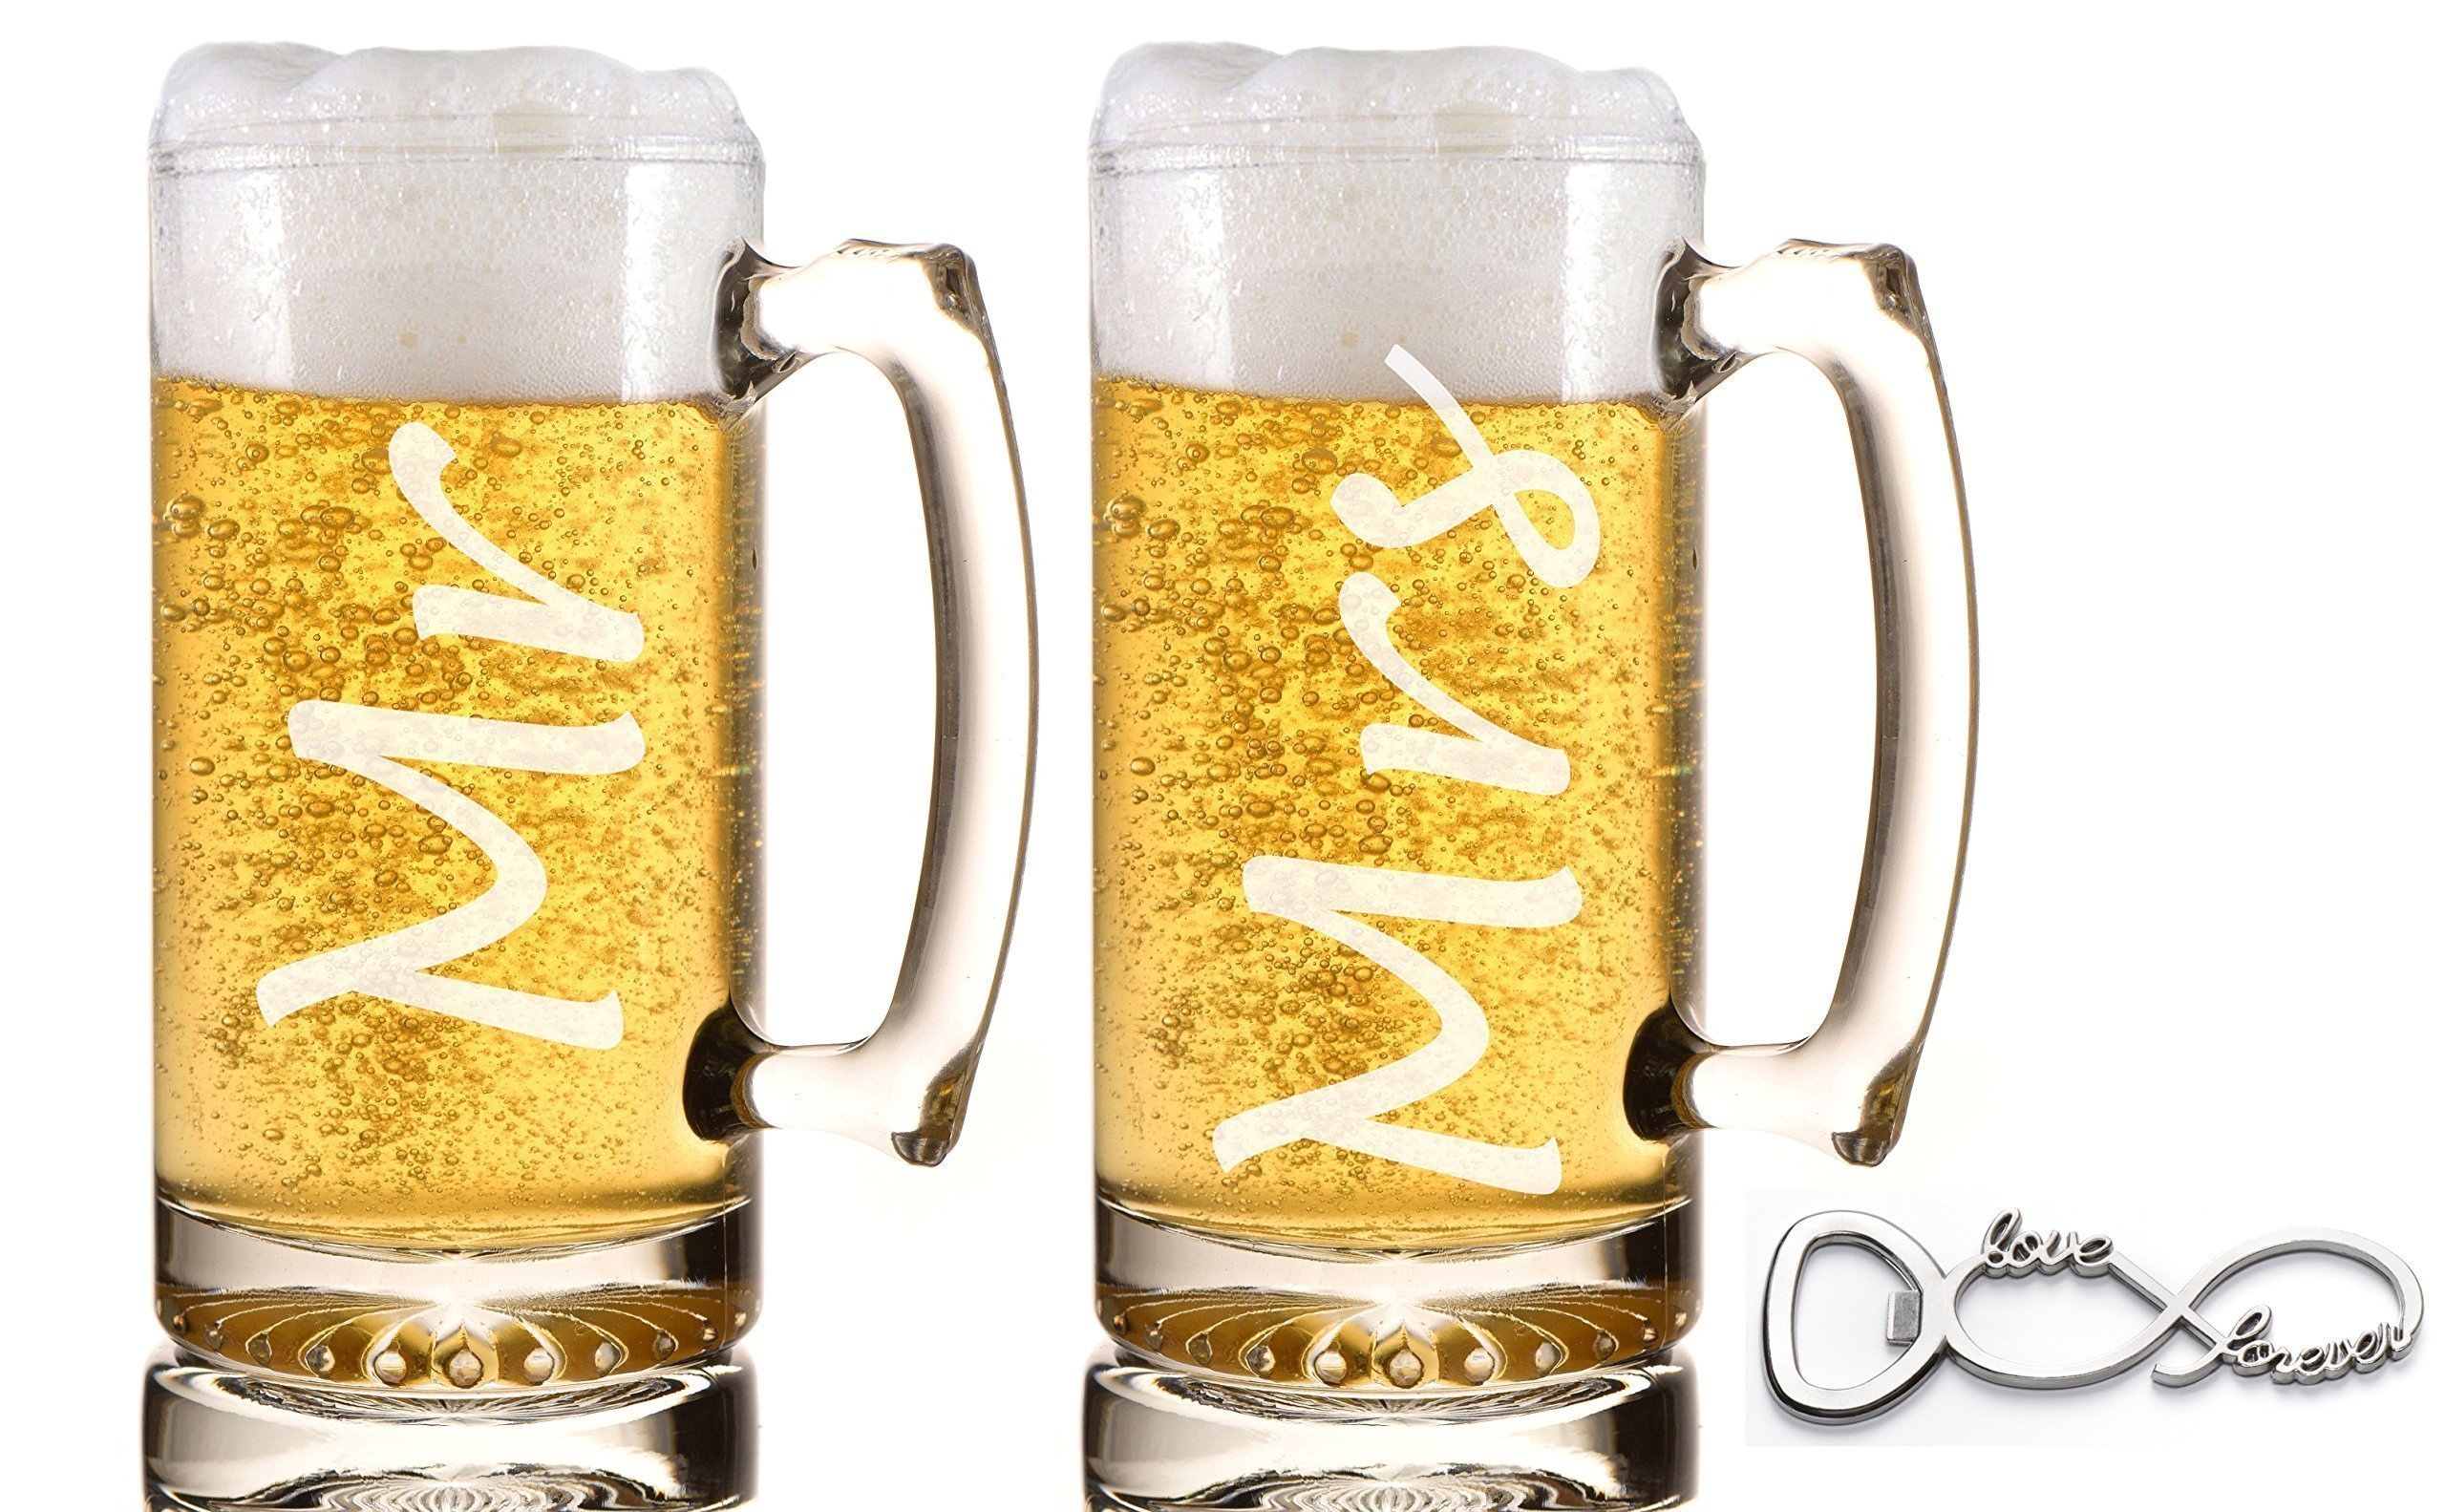 Mr. and Mrs. Beer Mug Gift Set Weddings Engagements Couple Gifts Anniversaries Heavy Duty Beer Mugs with Handles Beer Gifts